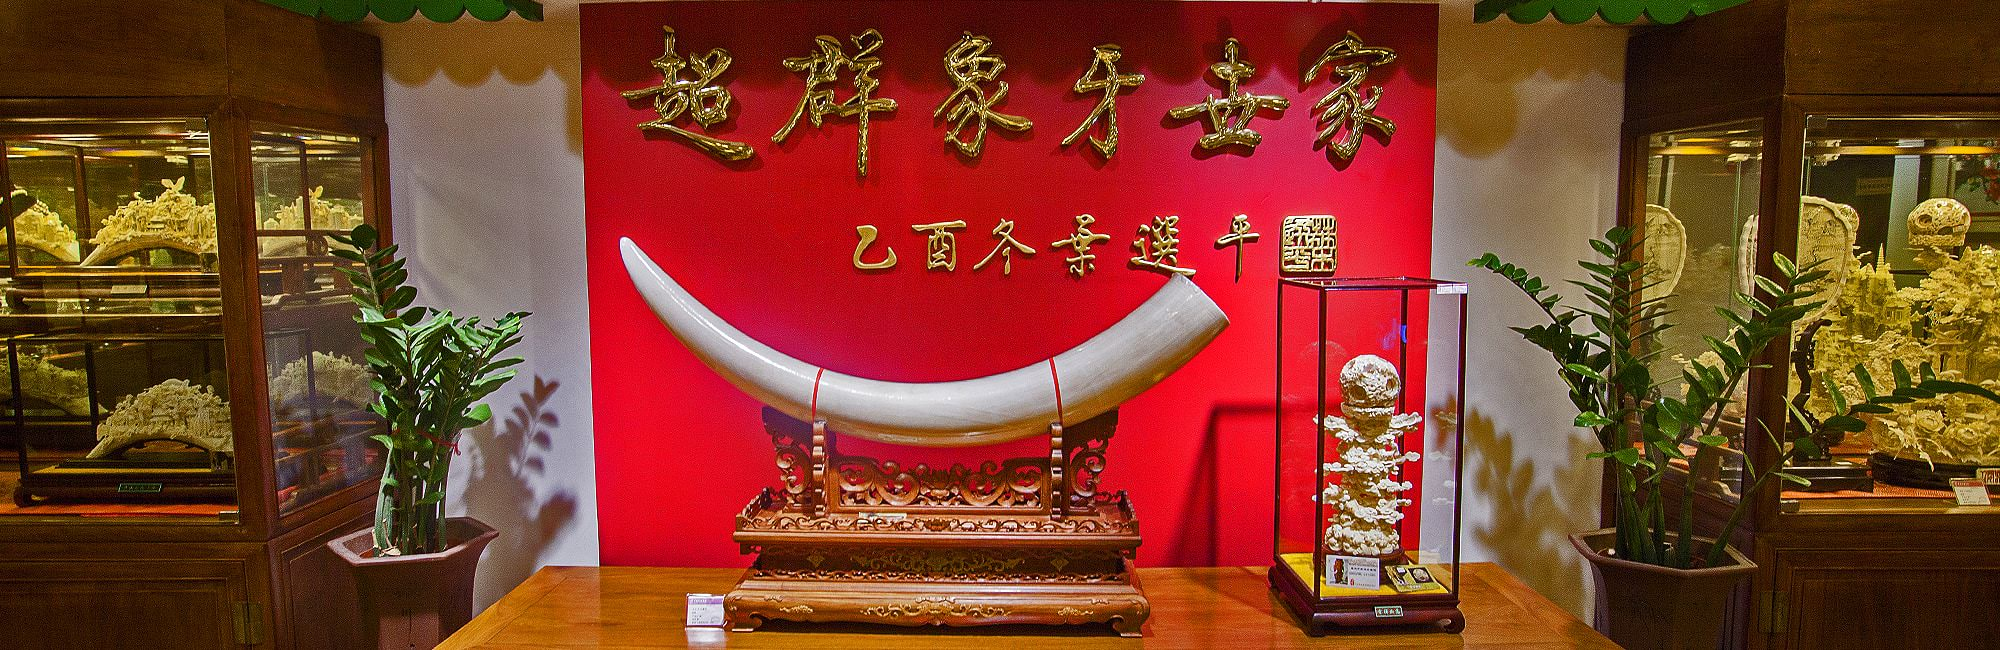 ivory, report, ivory report, Save the Elephants, China, STE